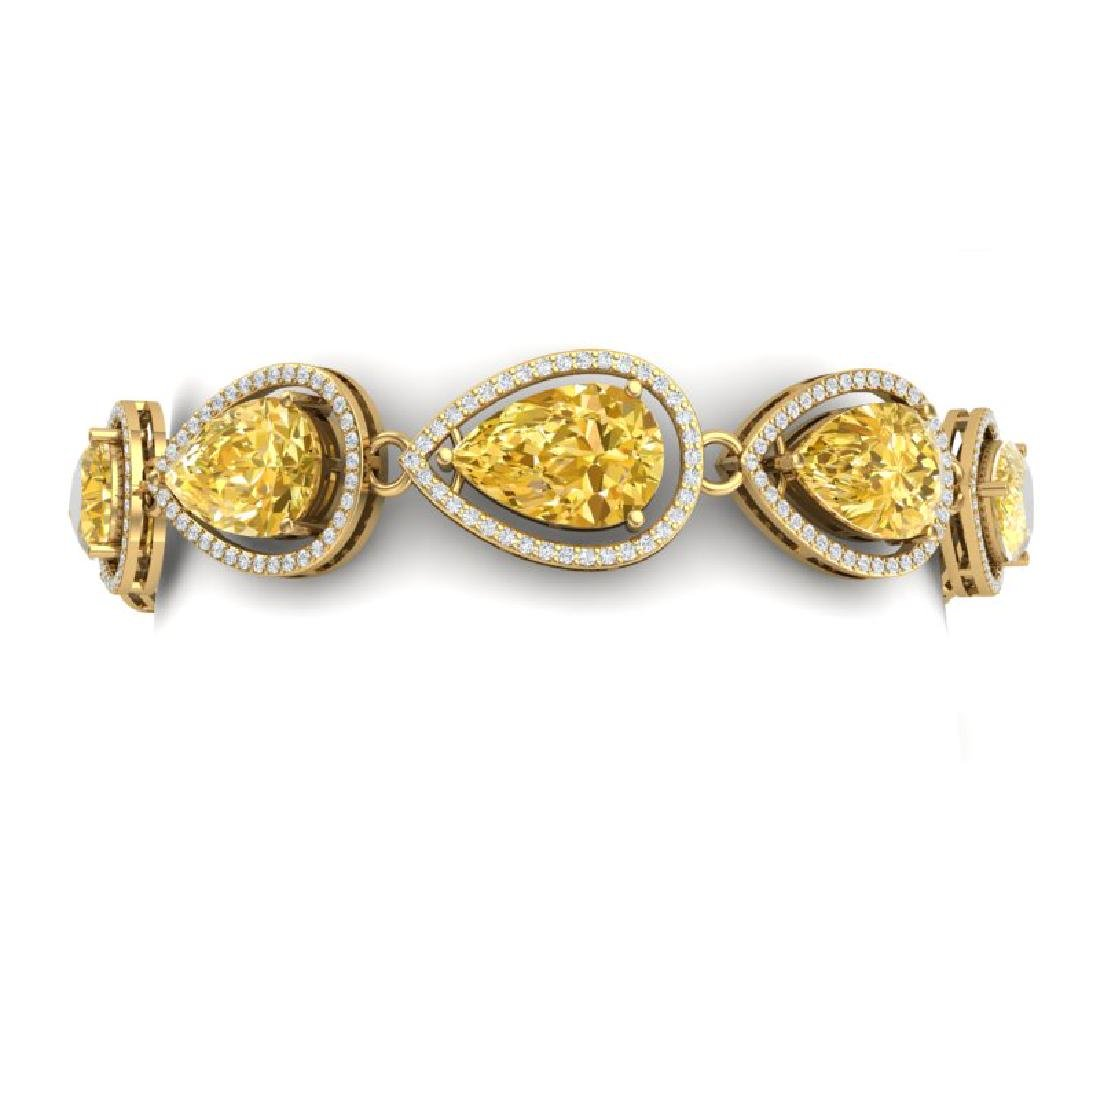 21.47 CTW Royalty Canary Citrine & VS Diamond Bracelet